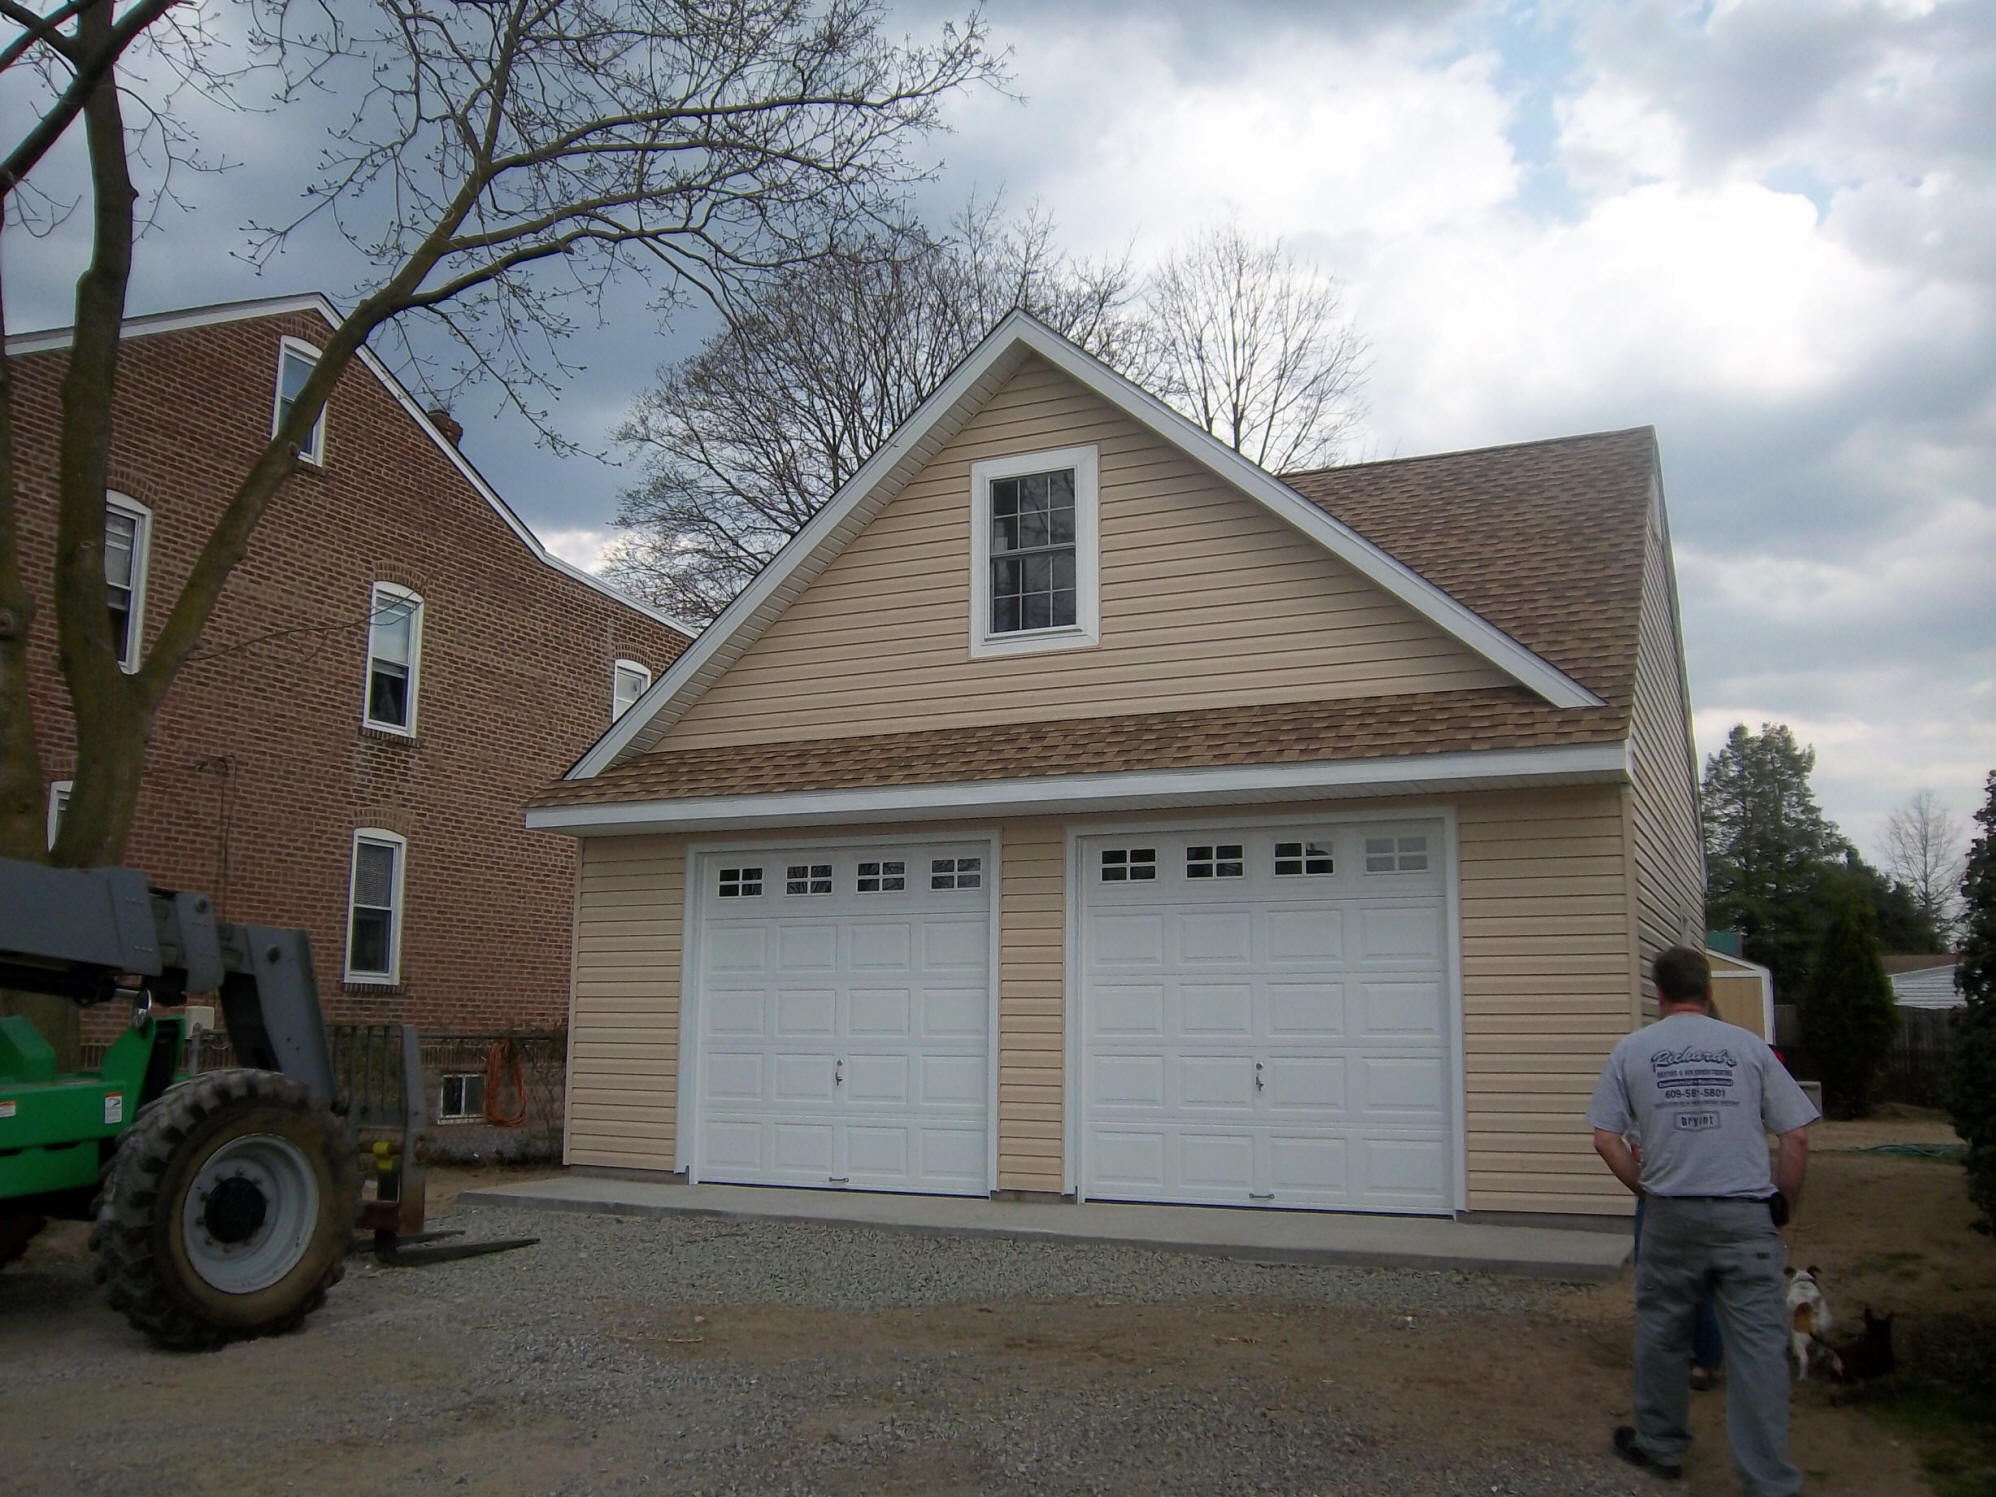 Deatched Garage 25 39 X 25 39 With Dormer Reed